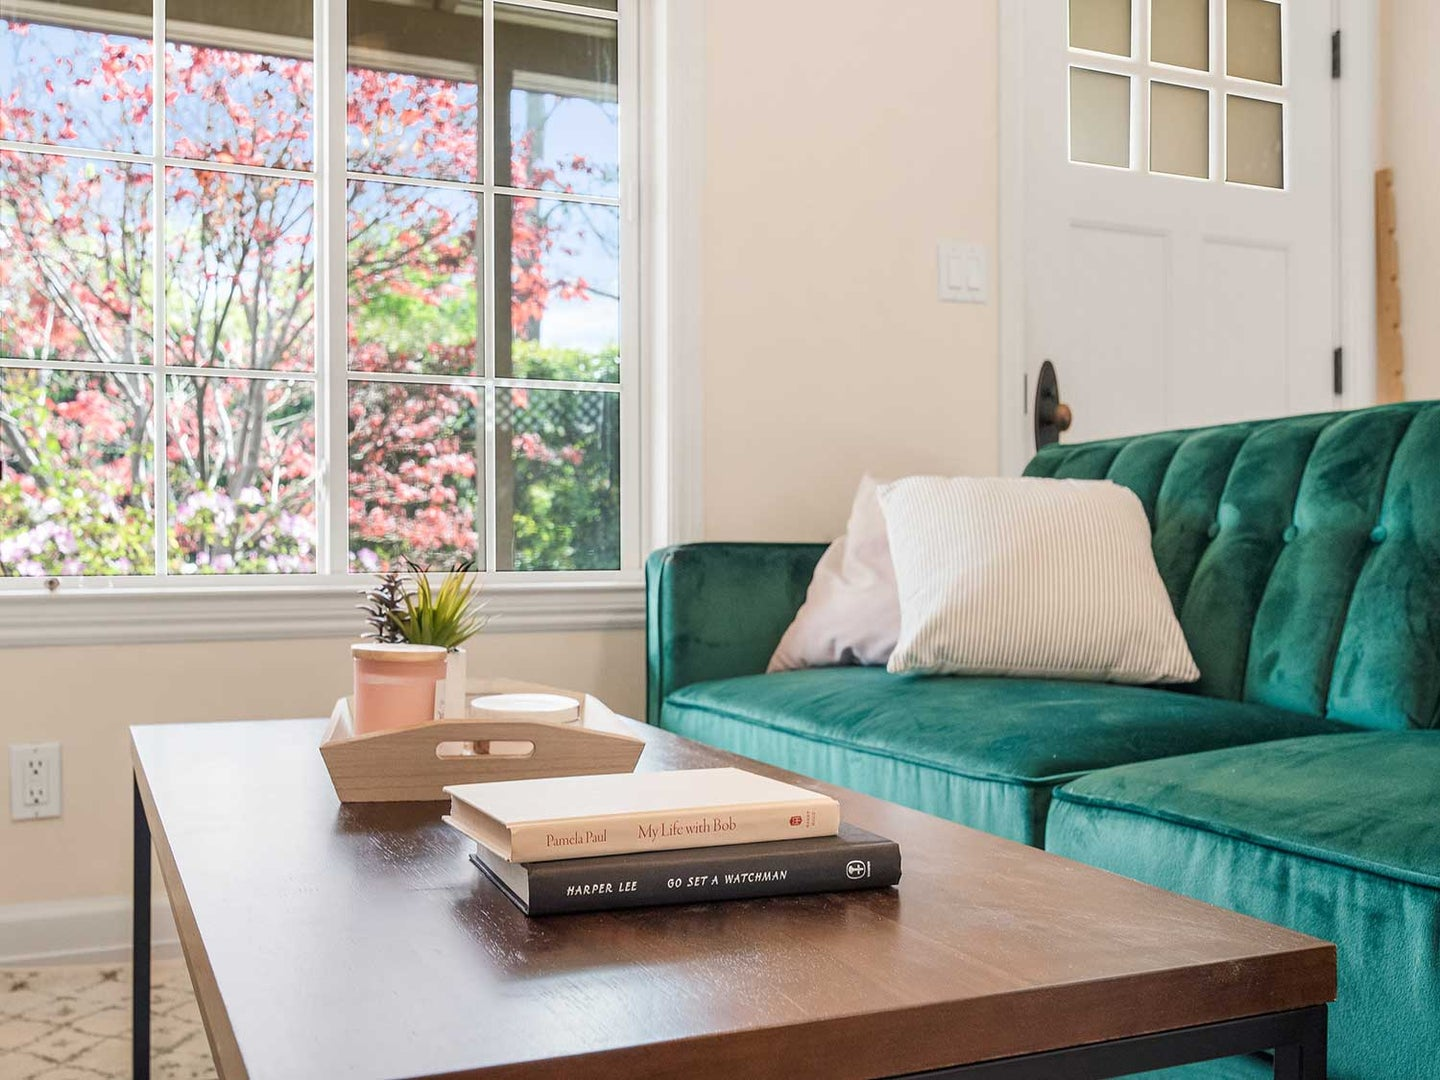 Coffee table in living room with books and plant in front of couch.